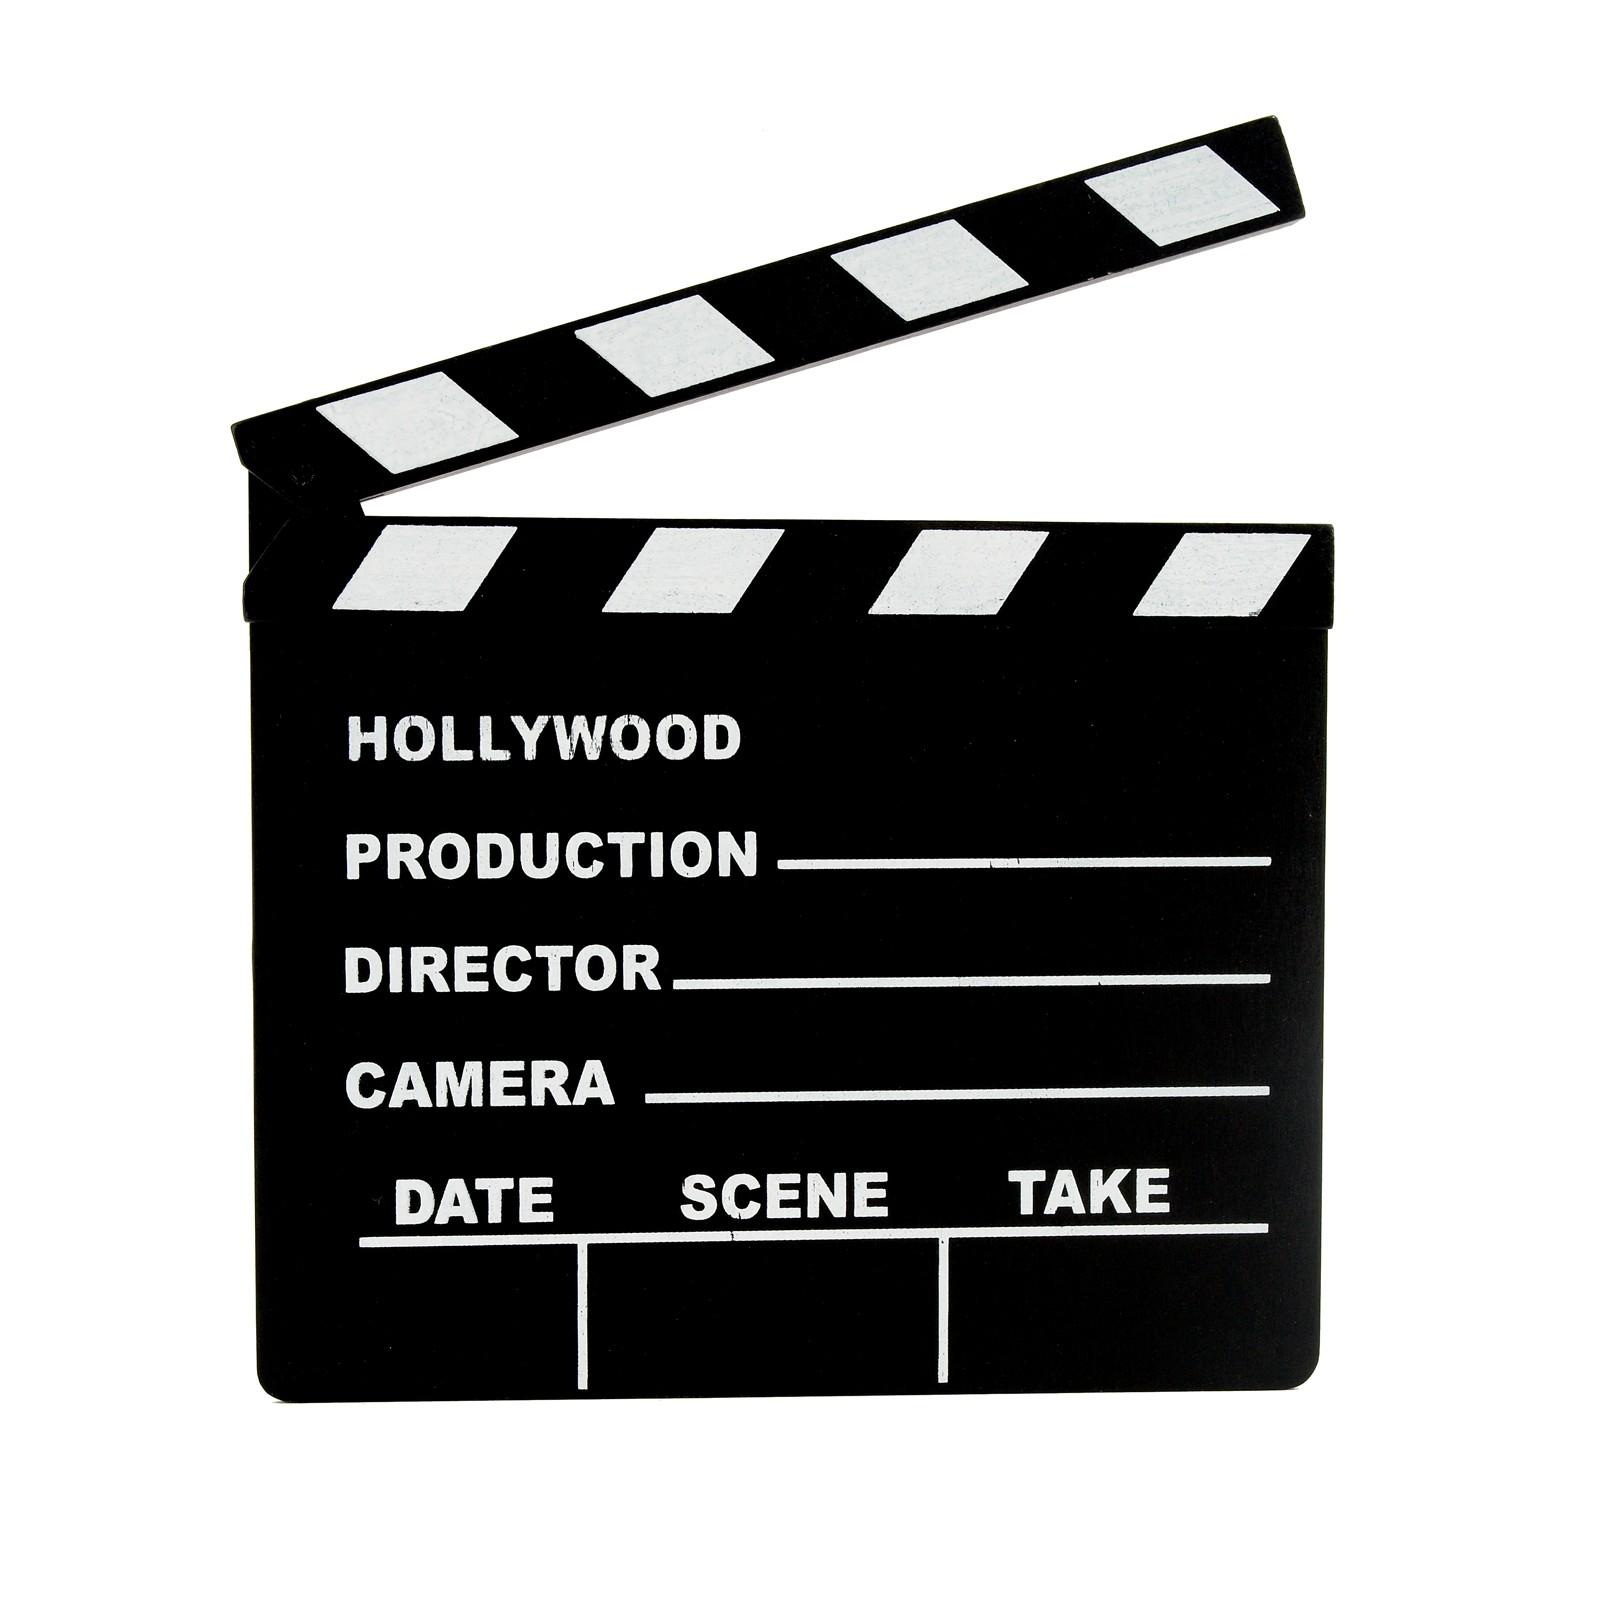 Free cliparts download clip. Action clipart hollywood